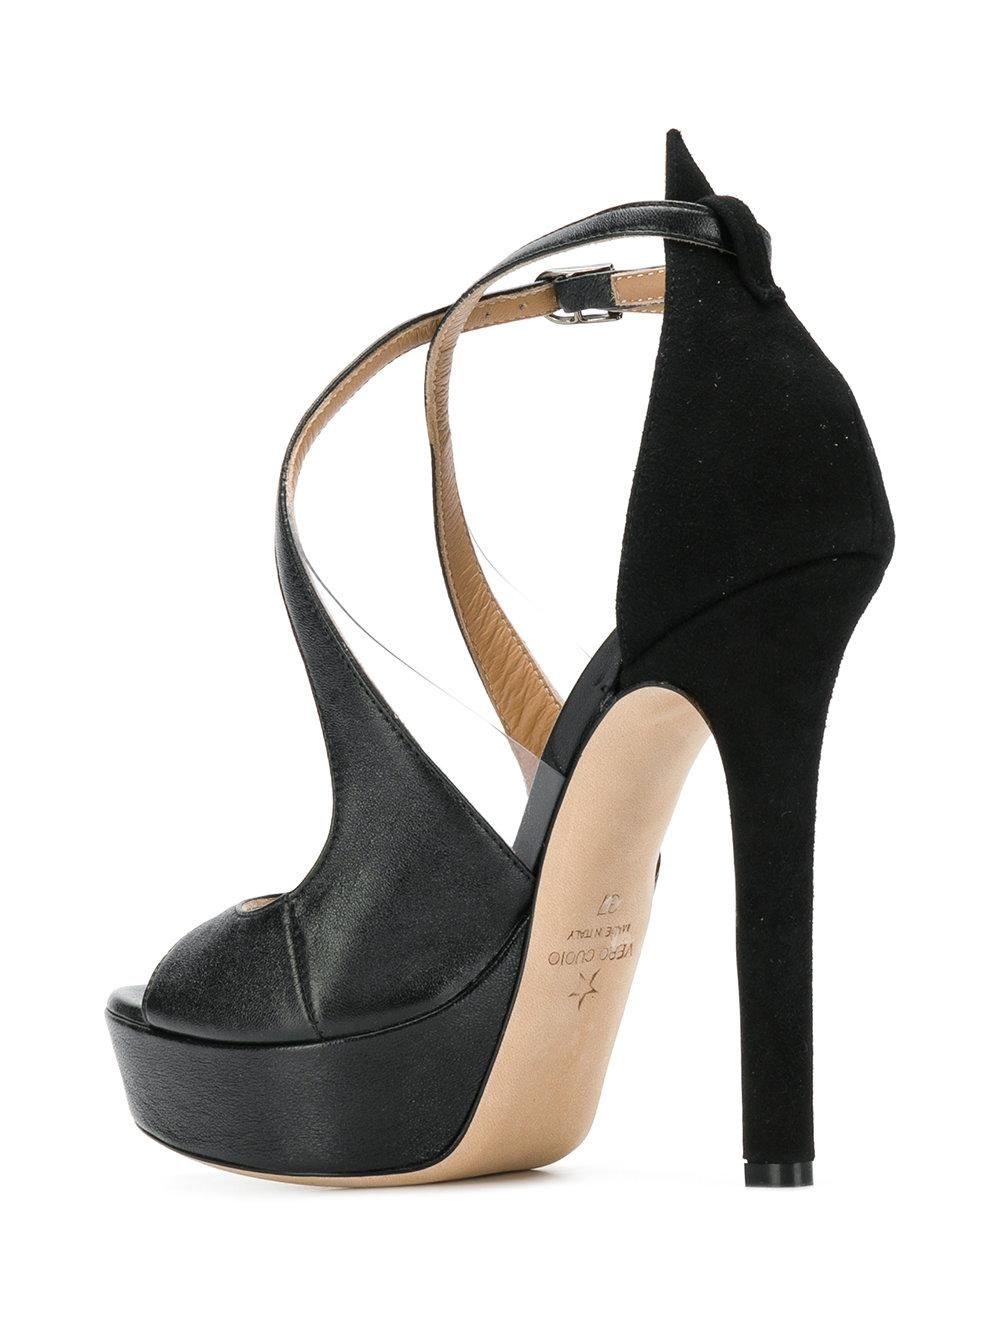 0d6d44e747f1 Lyst - Marc Ellis Cross Strap Platform Sandals in Black